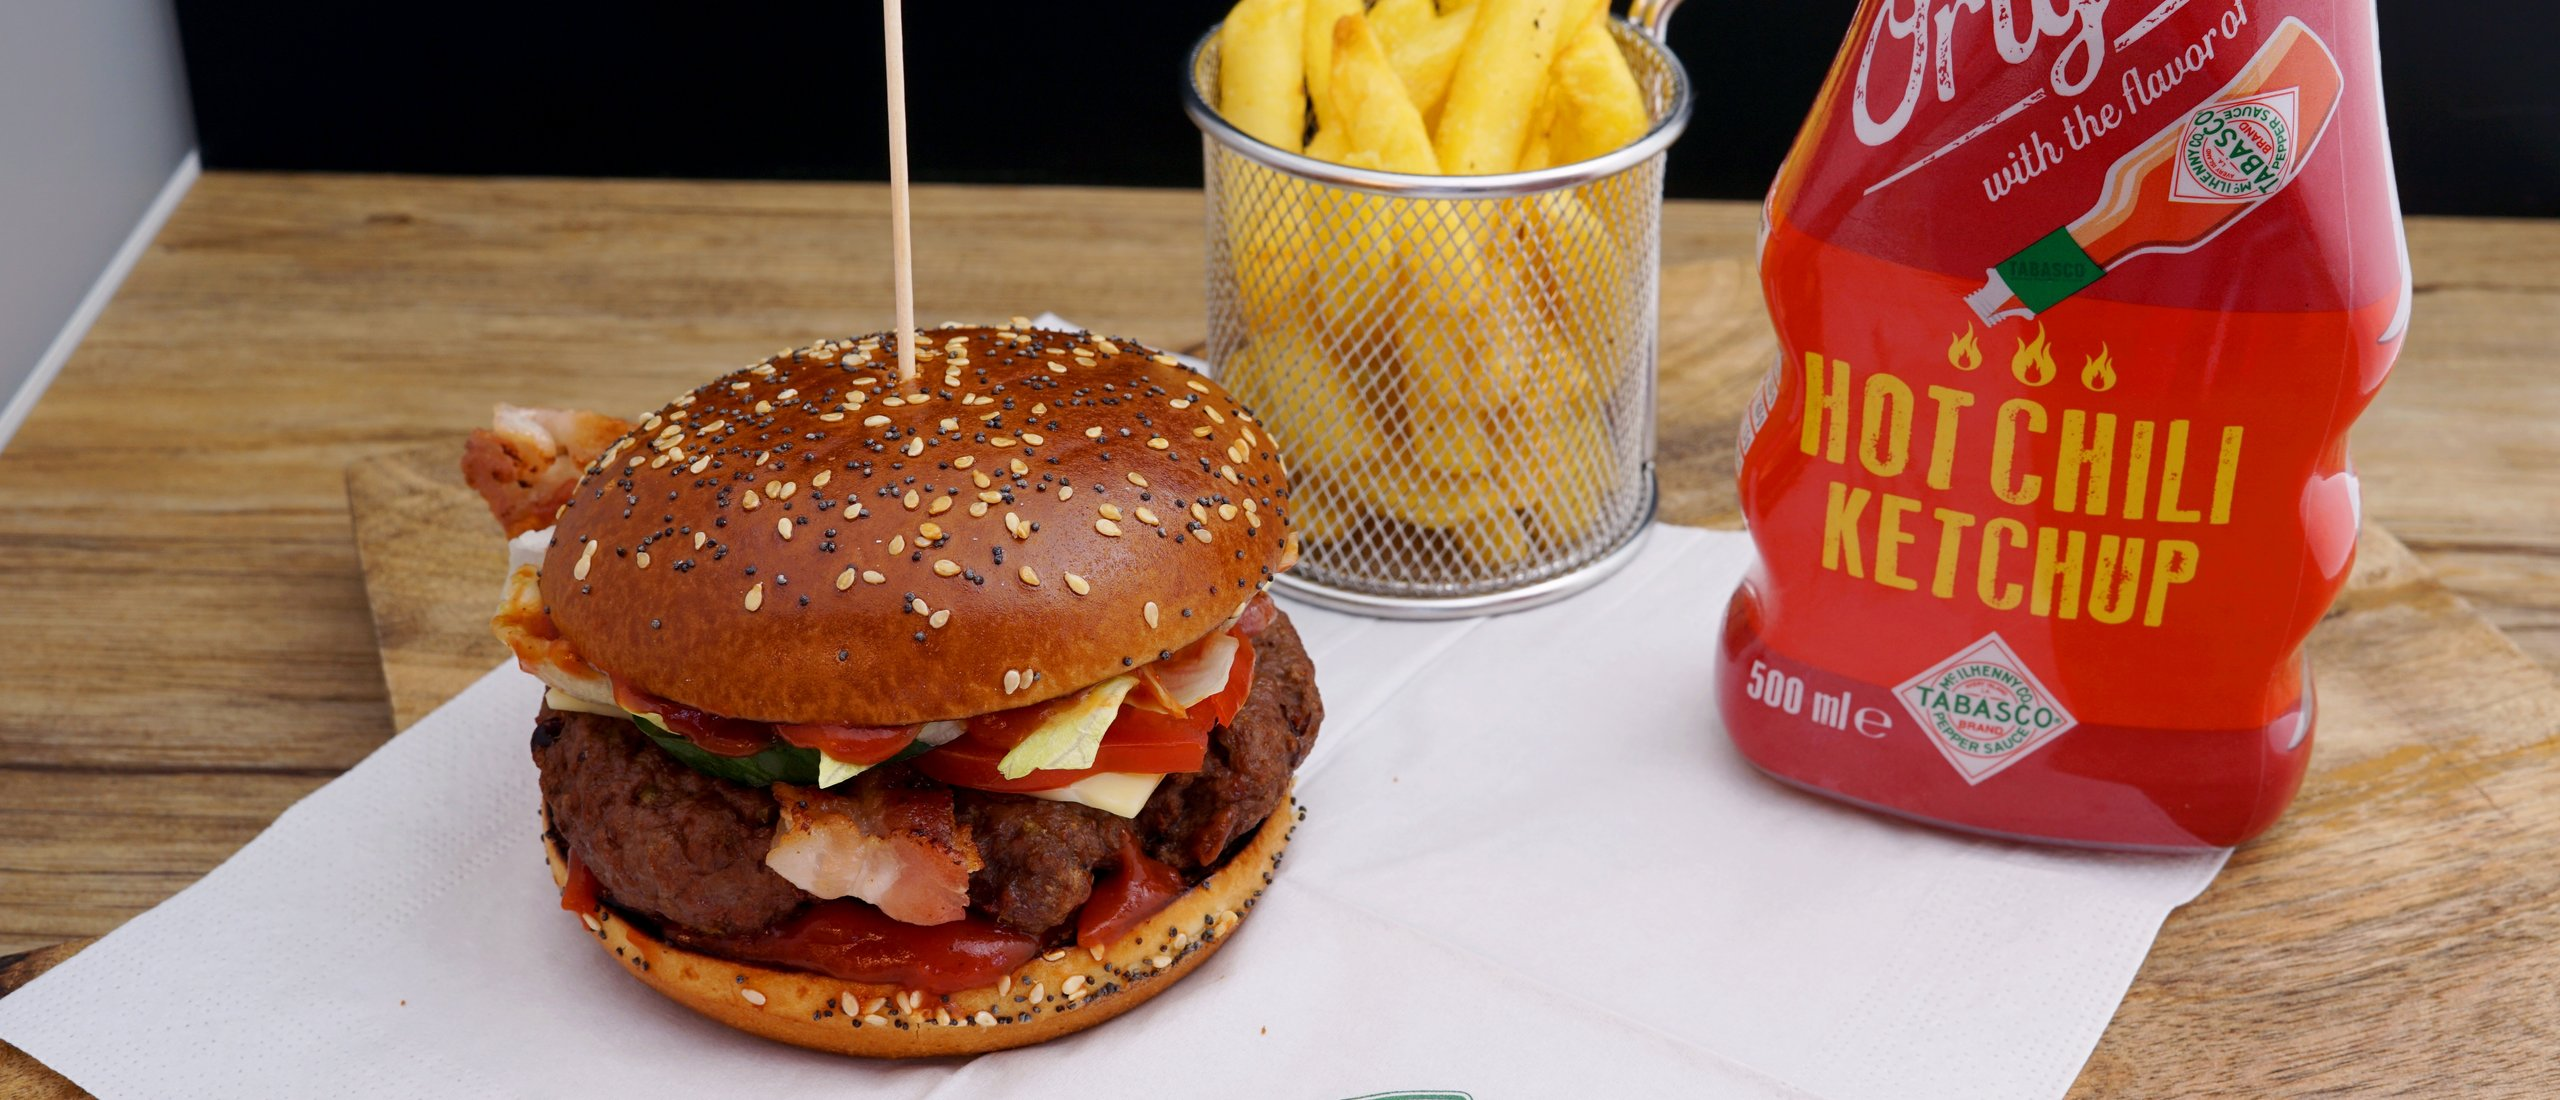 Rezept, Gericht von Develey: Big Spicy Burger mit Hot Chili Ketchup, Tabasco, scharf, hot, chili-sauce, our original,